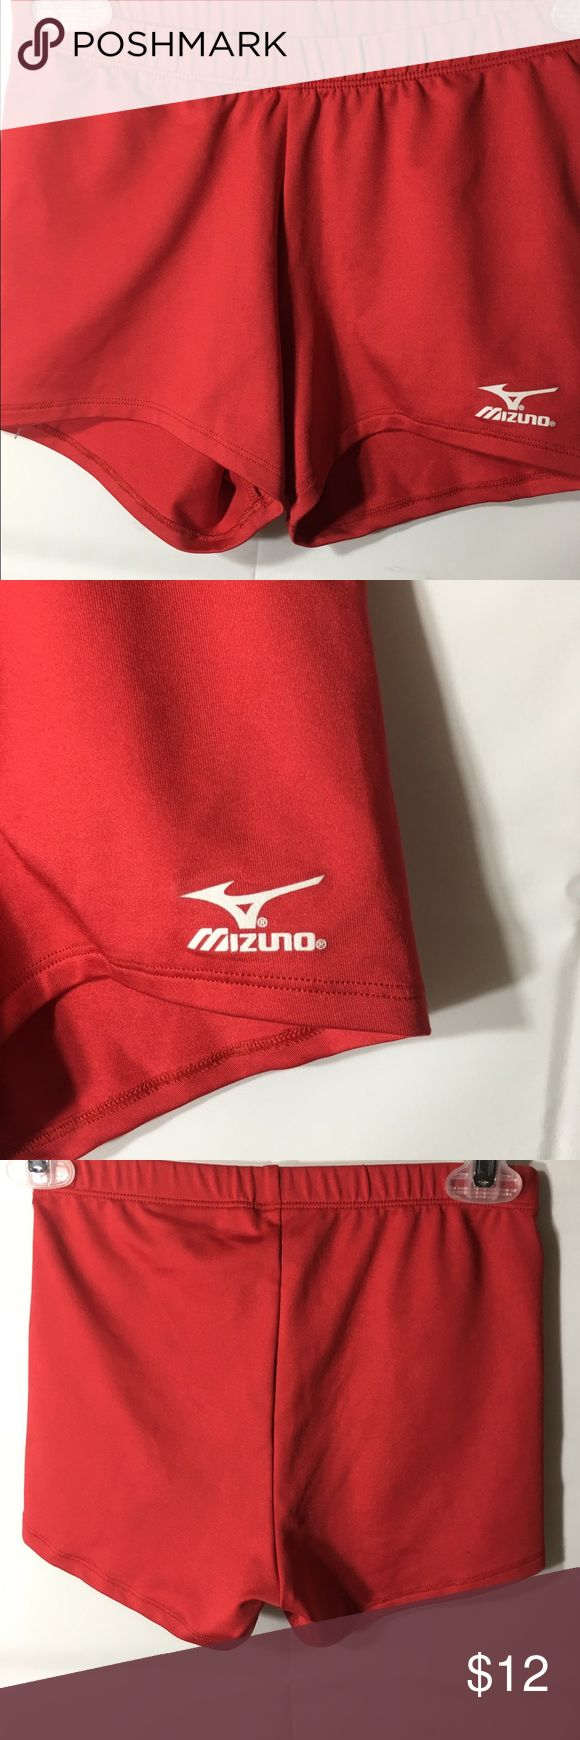 Mizuno Athletic Shorts Size Small Red Mizuno athletic shorts womens small Polyester spandex blend 2 inch inseam 8 inch rise Mizuno Shorts